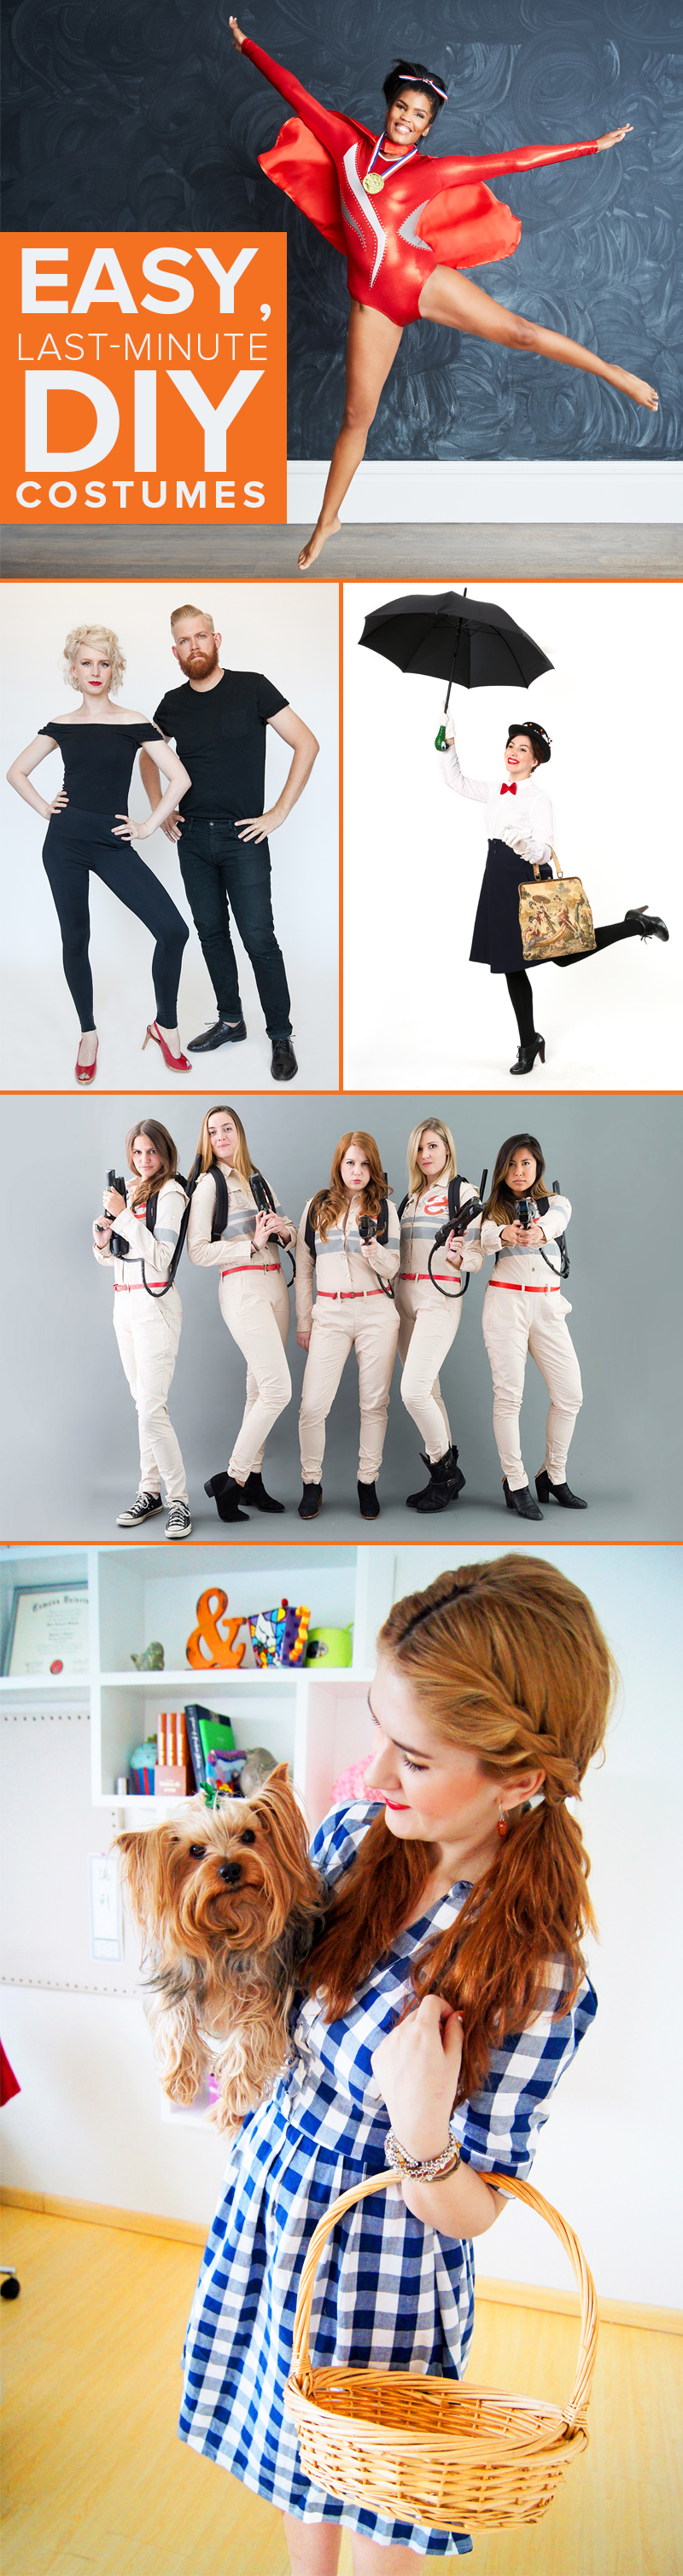 5 Halloween Costumes You Can Make At Home In Just 3 Steps